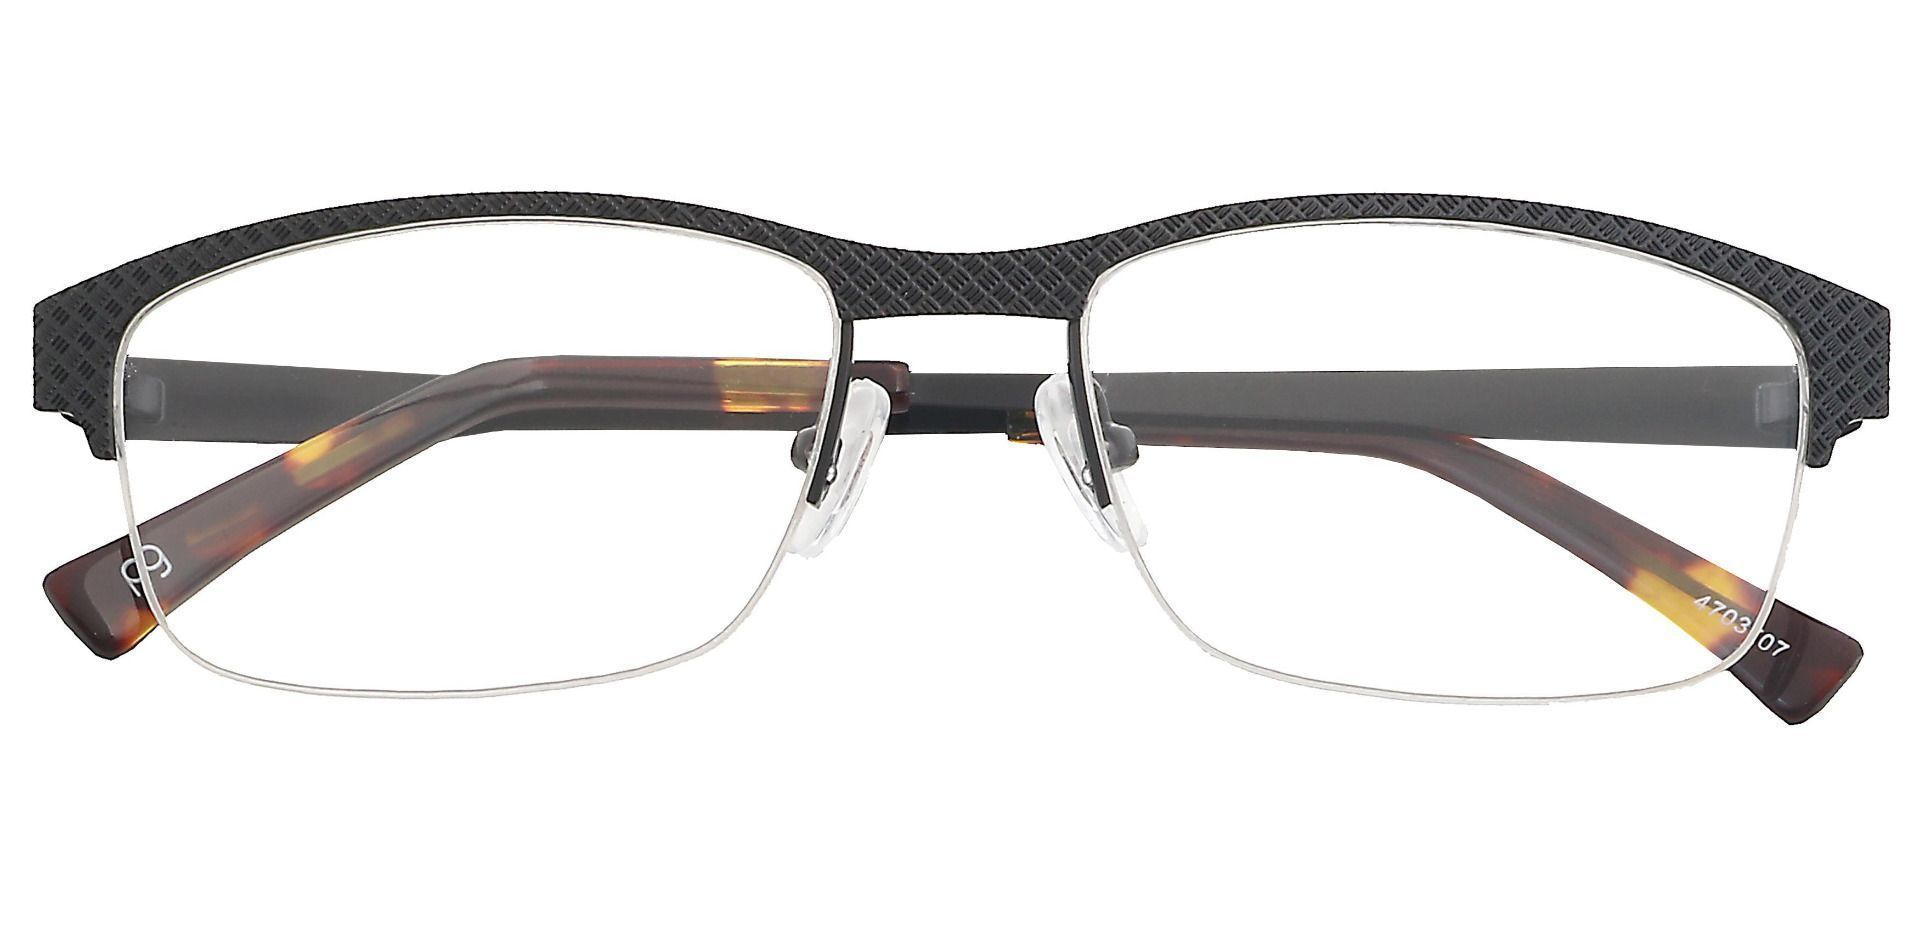 Bret Rectangle Lined Bifocal Glasses - Black